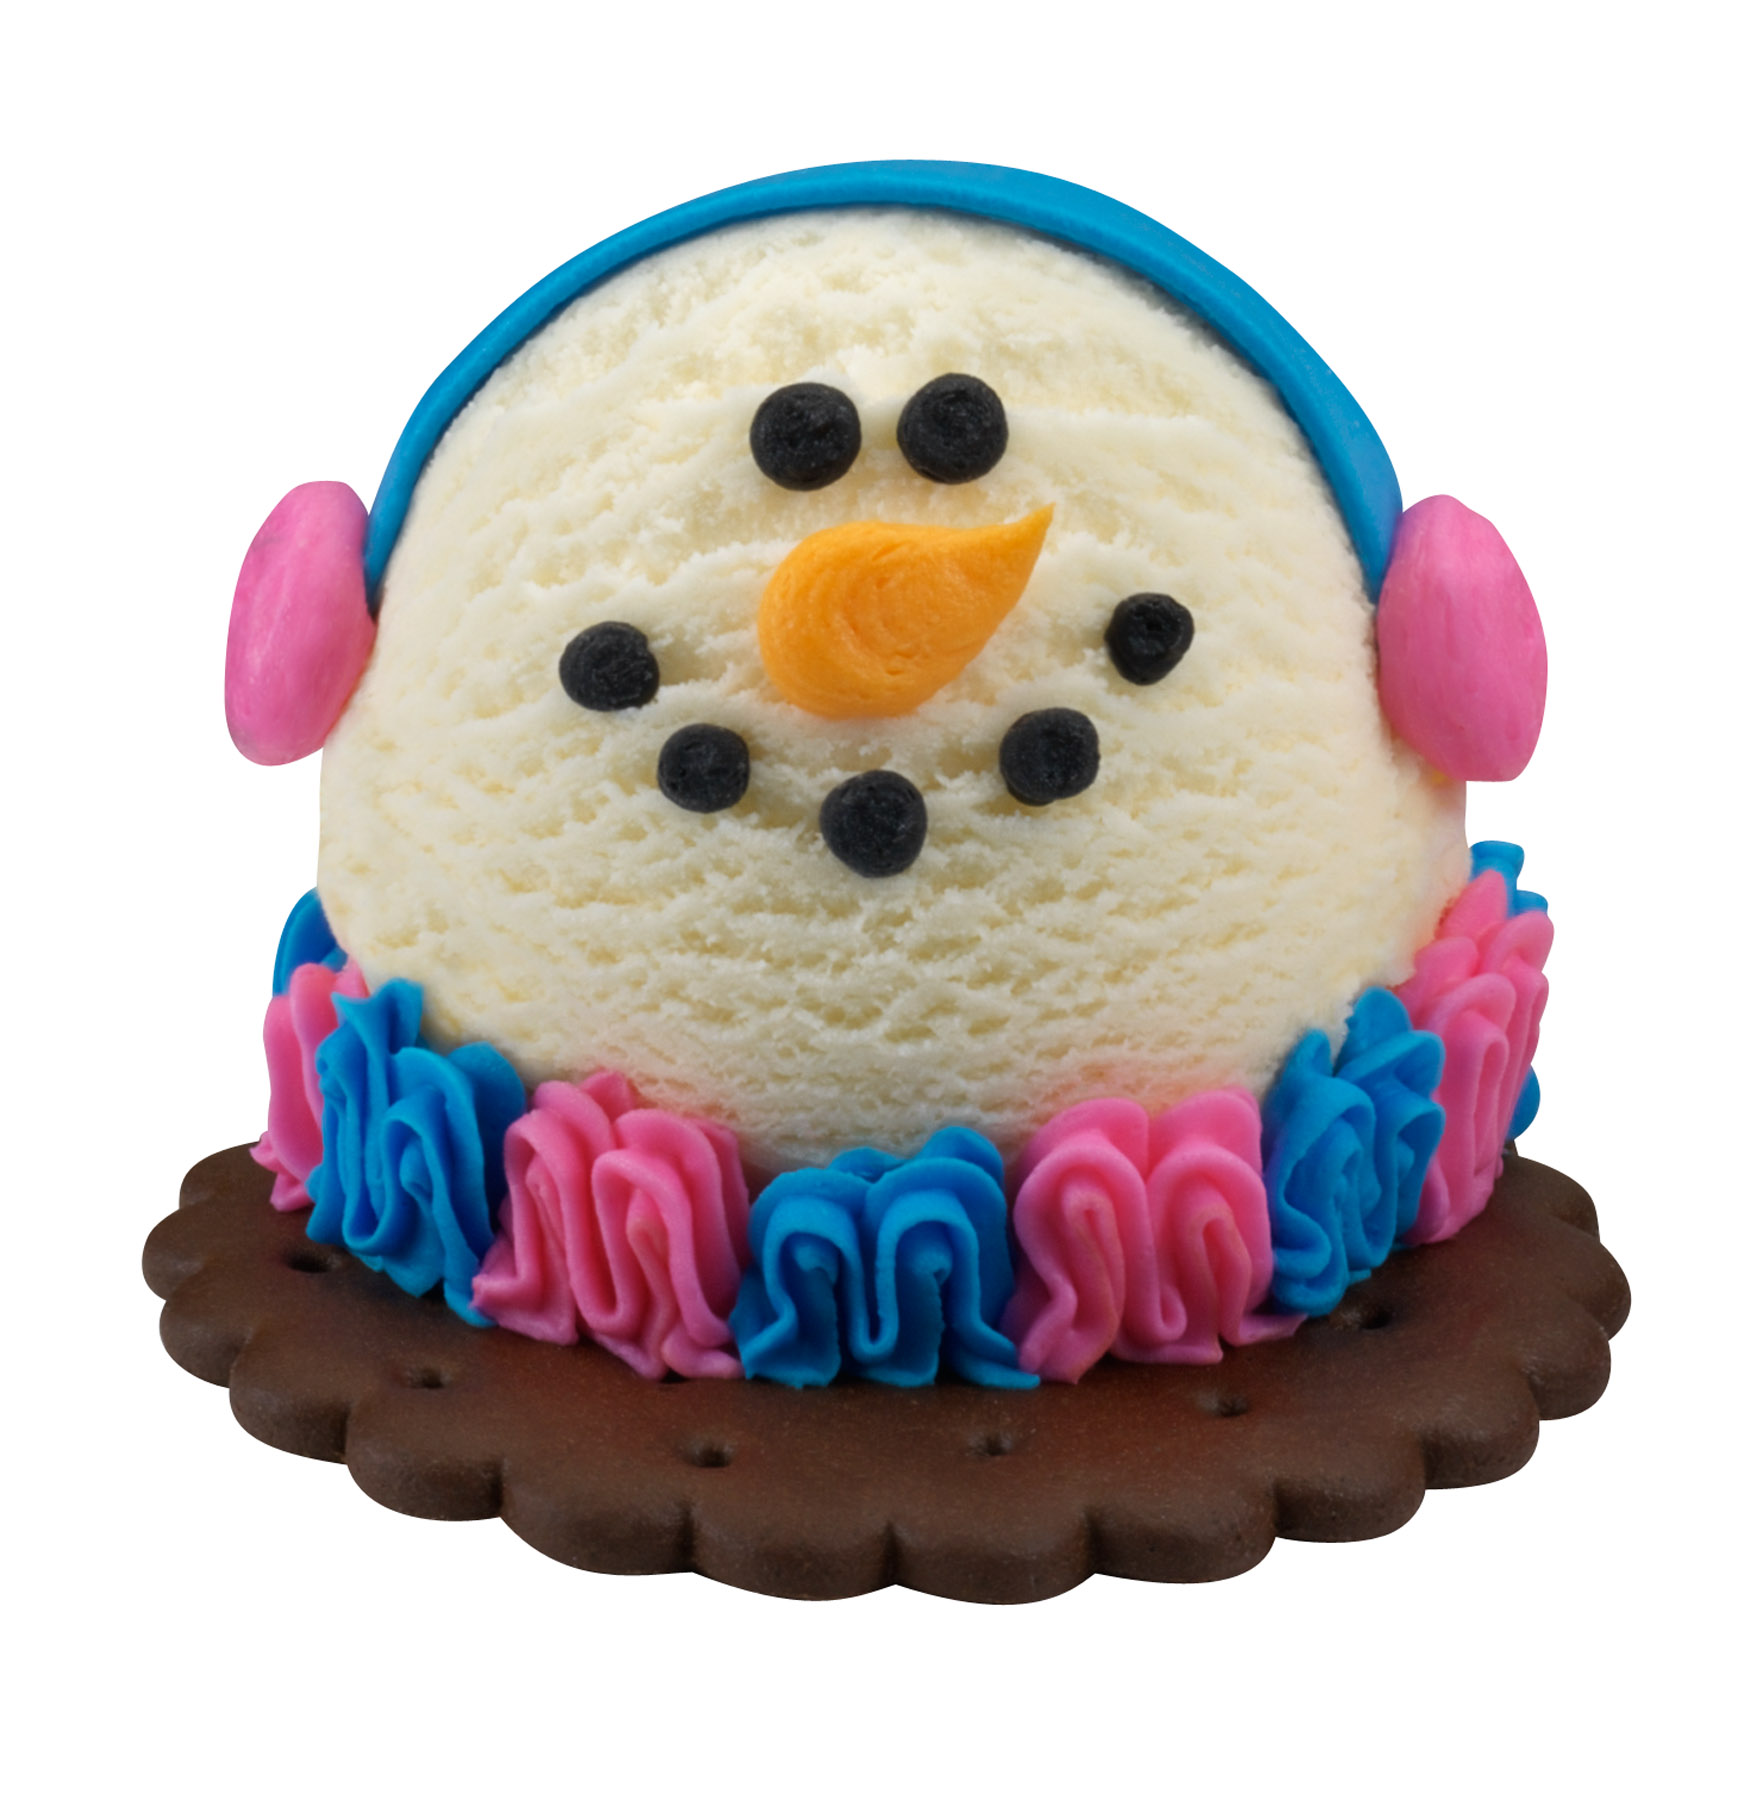 Celebrating The Holidays With Baskin Robbins Ice Cream Cake Just